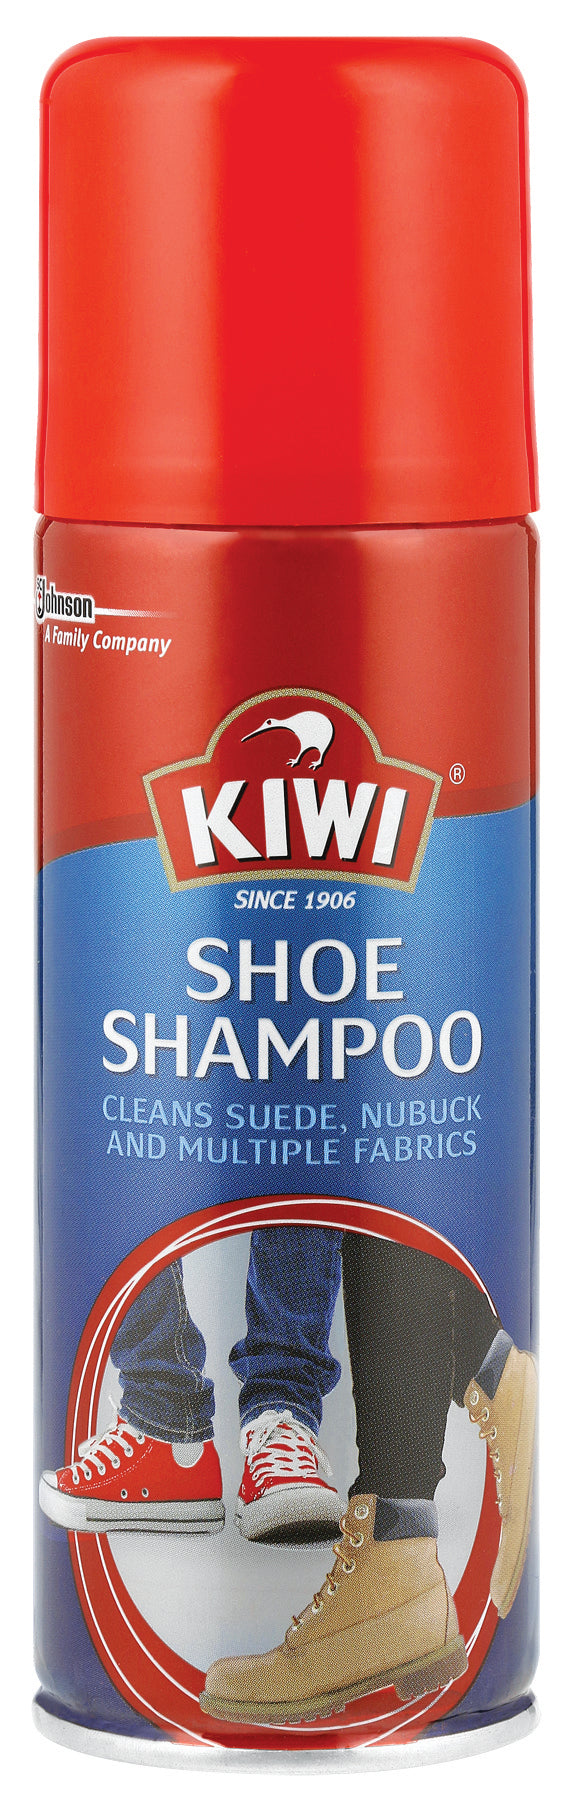 Kiwi Shoe Shampoo Cleans All Shoes 1 x 200ml